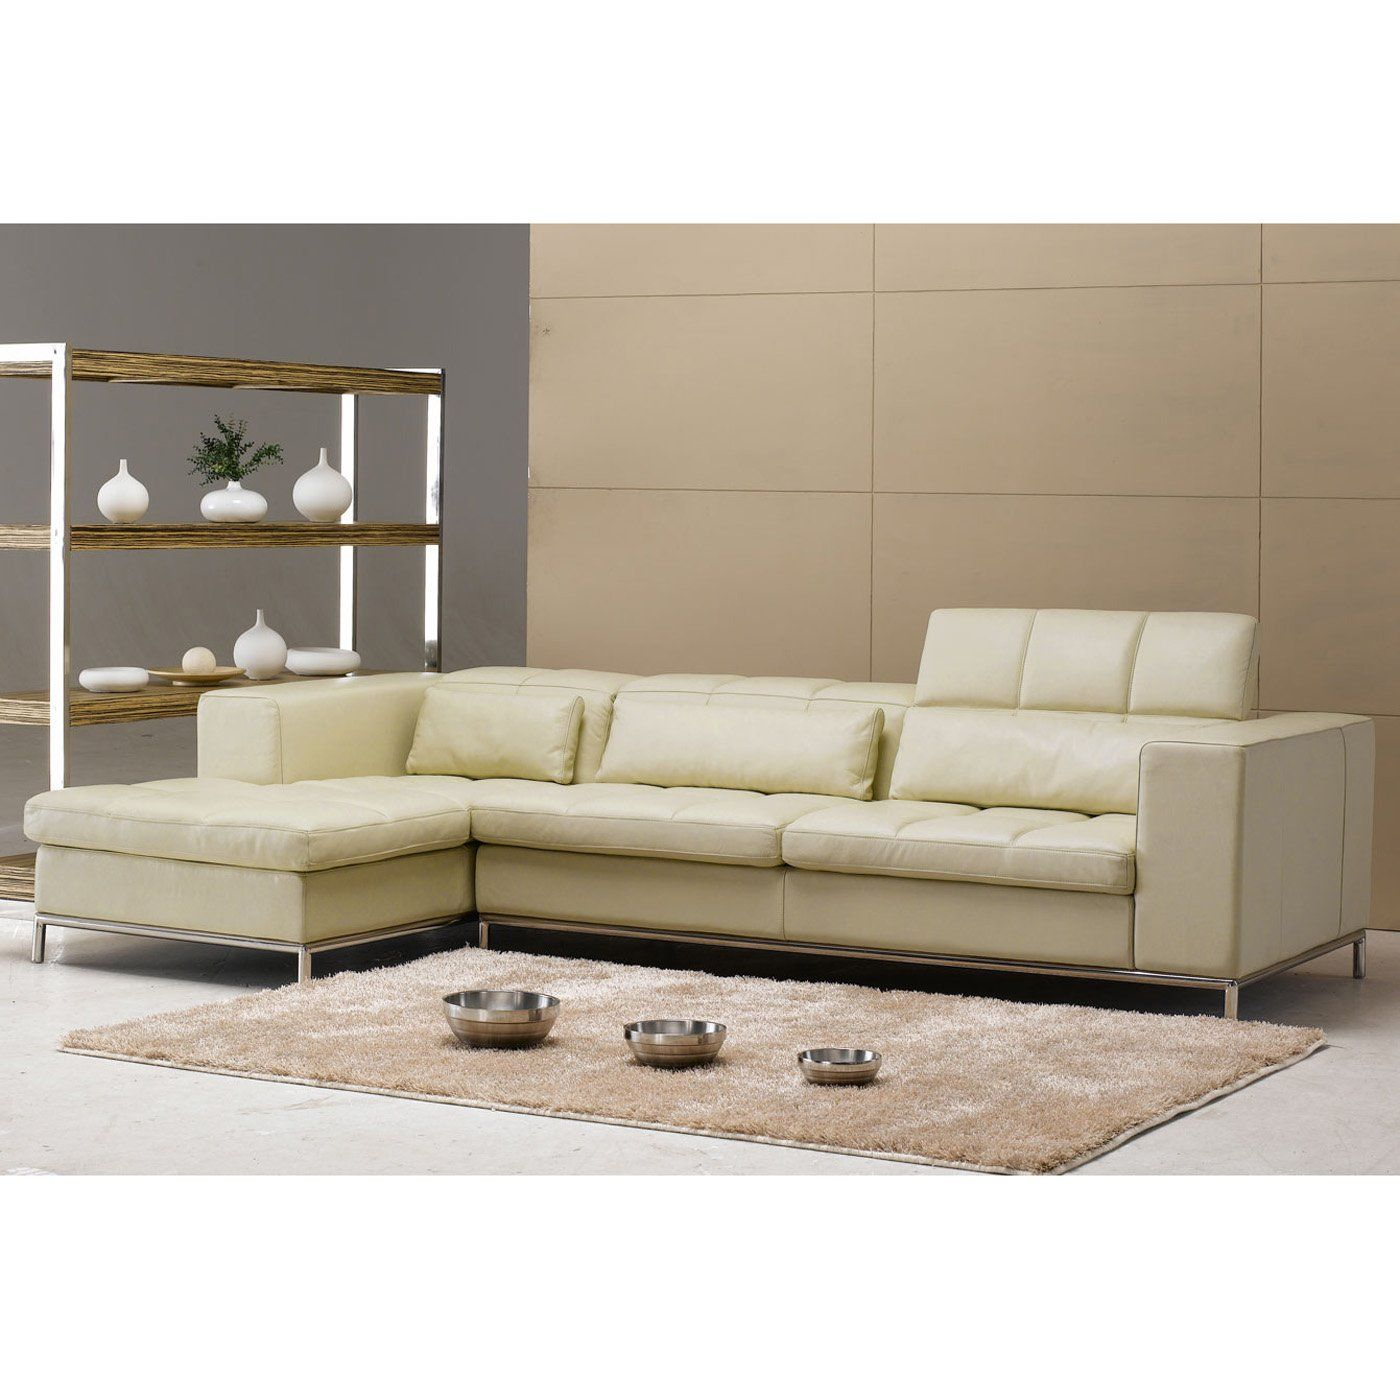 Have To Have It Tosh Furniture Modern Beige Leather Sectional